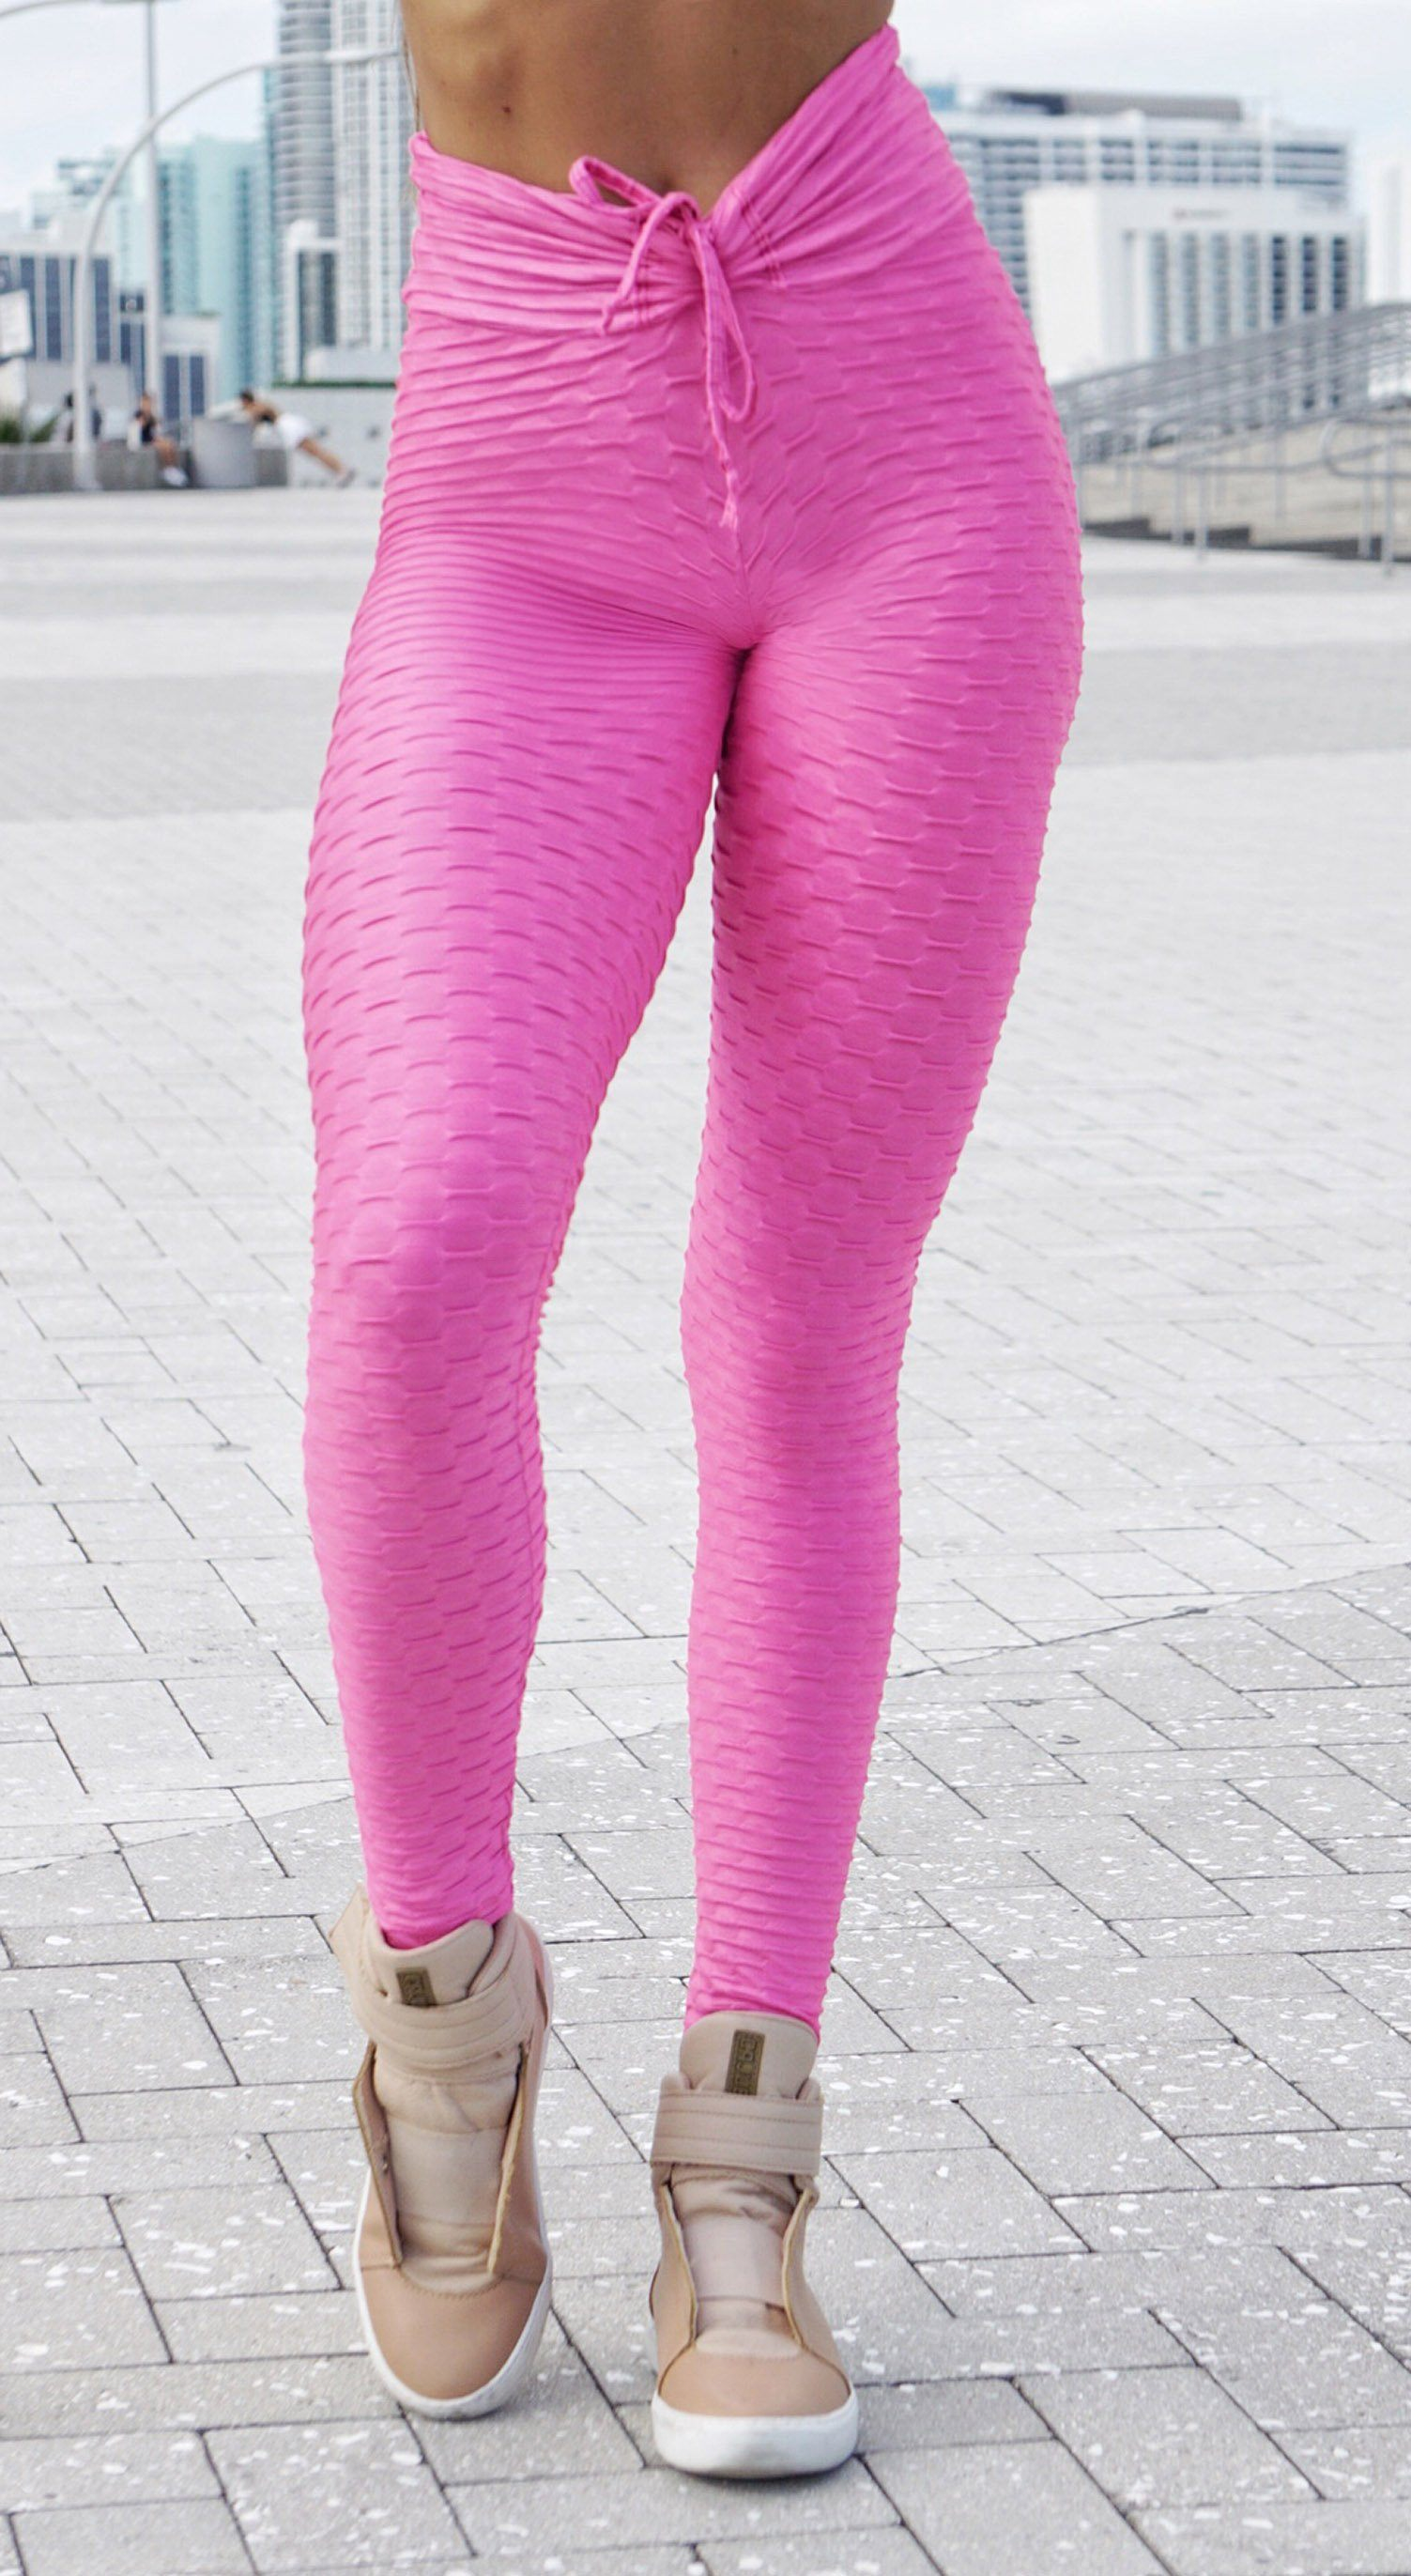 High Waist Zero Flaws Textured Shiny Pink Leggings